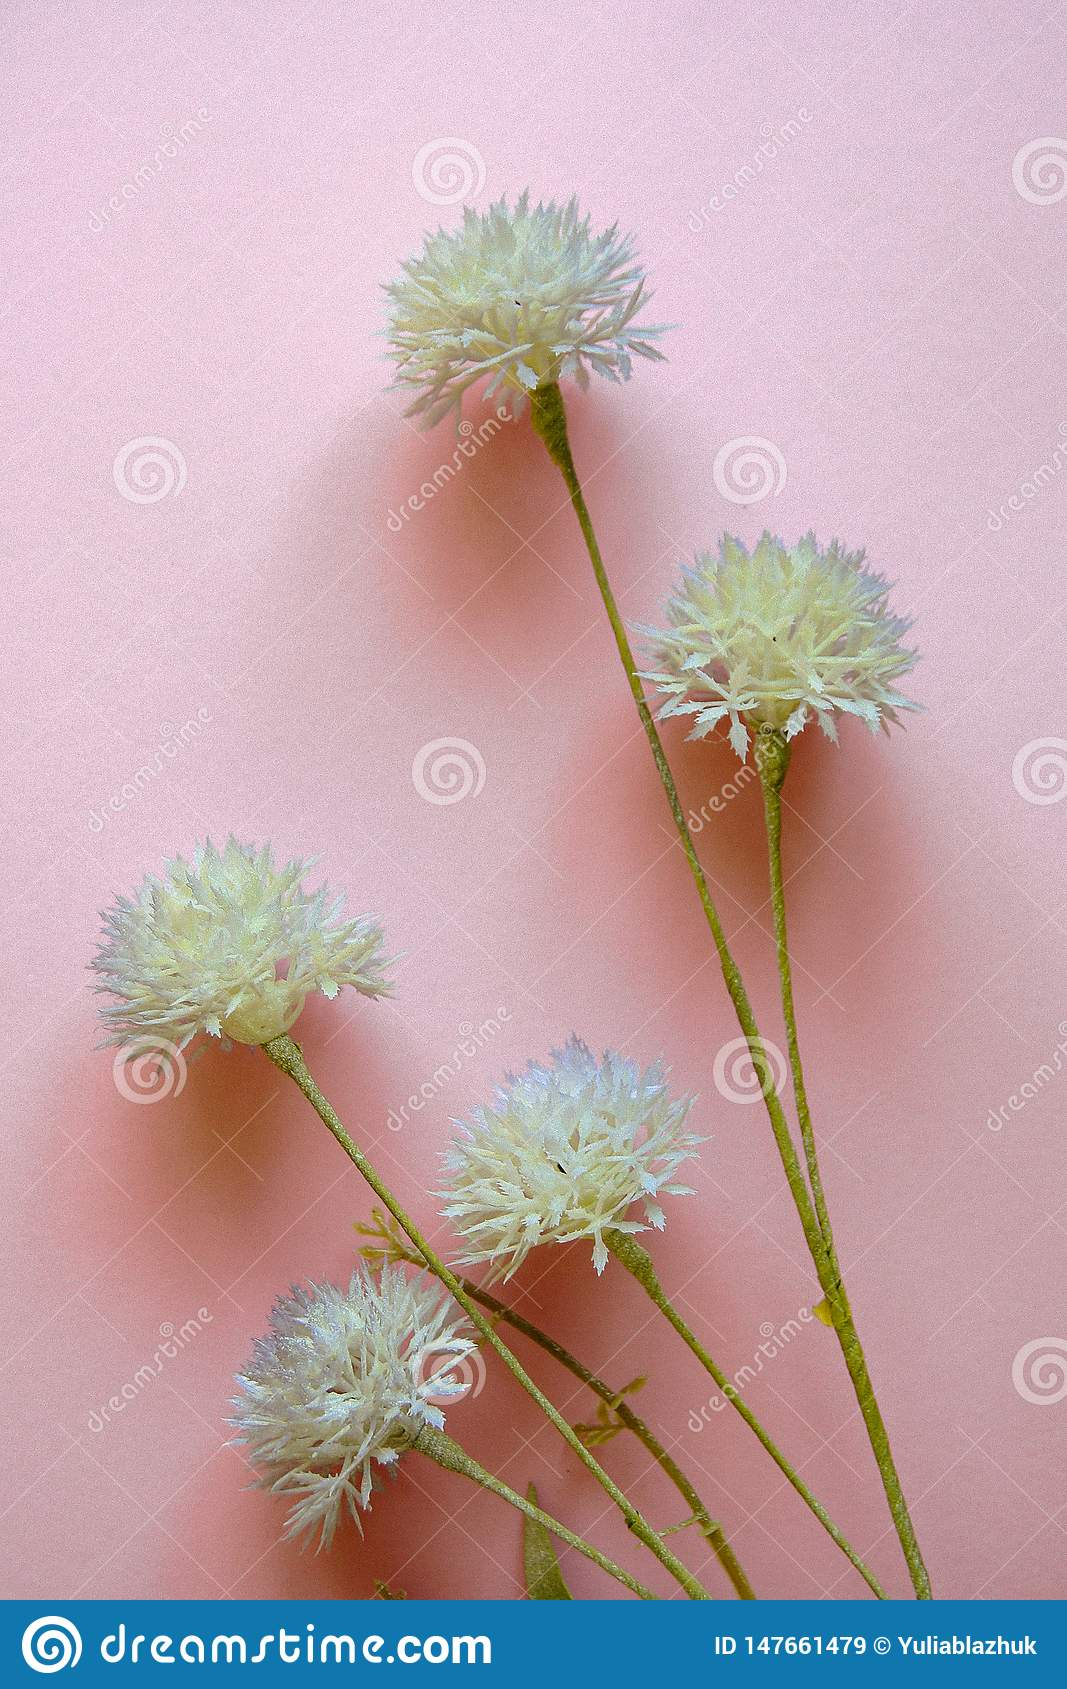 Pale purple wild flowers against pastel pink background. Flat lay